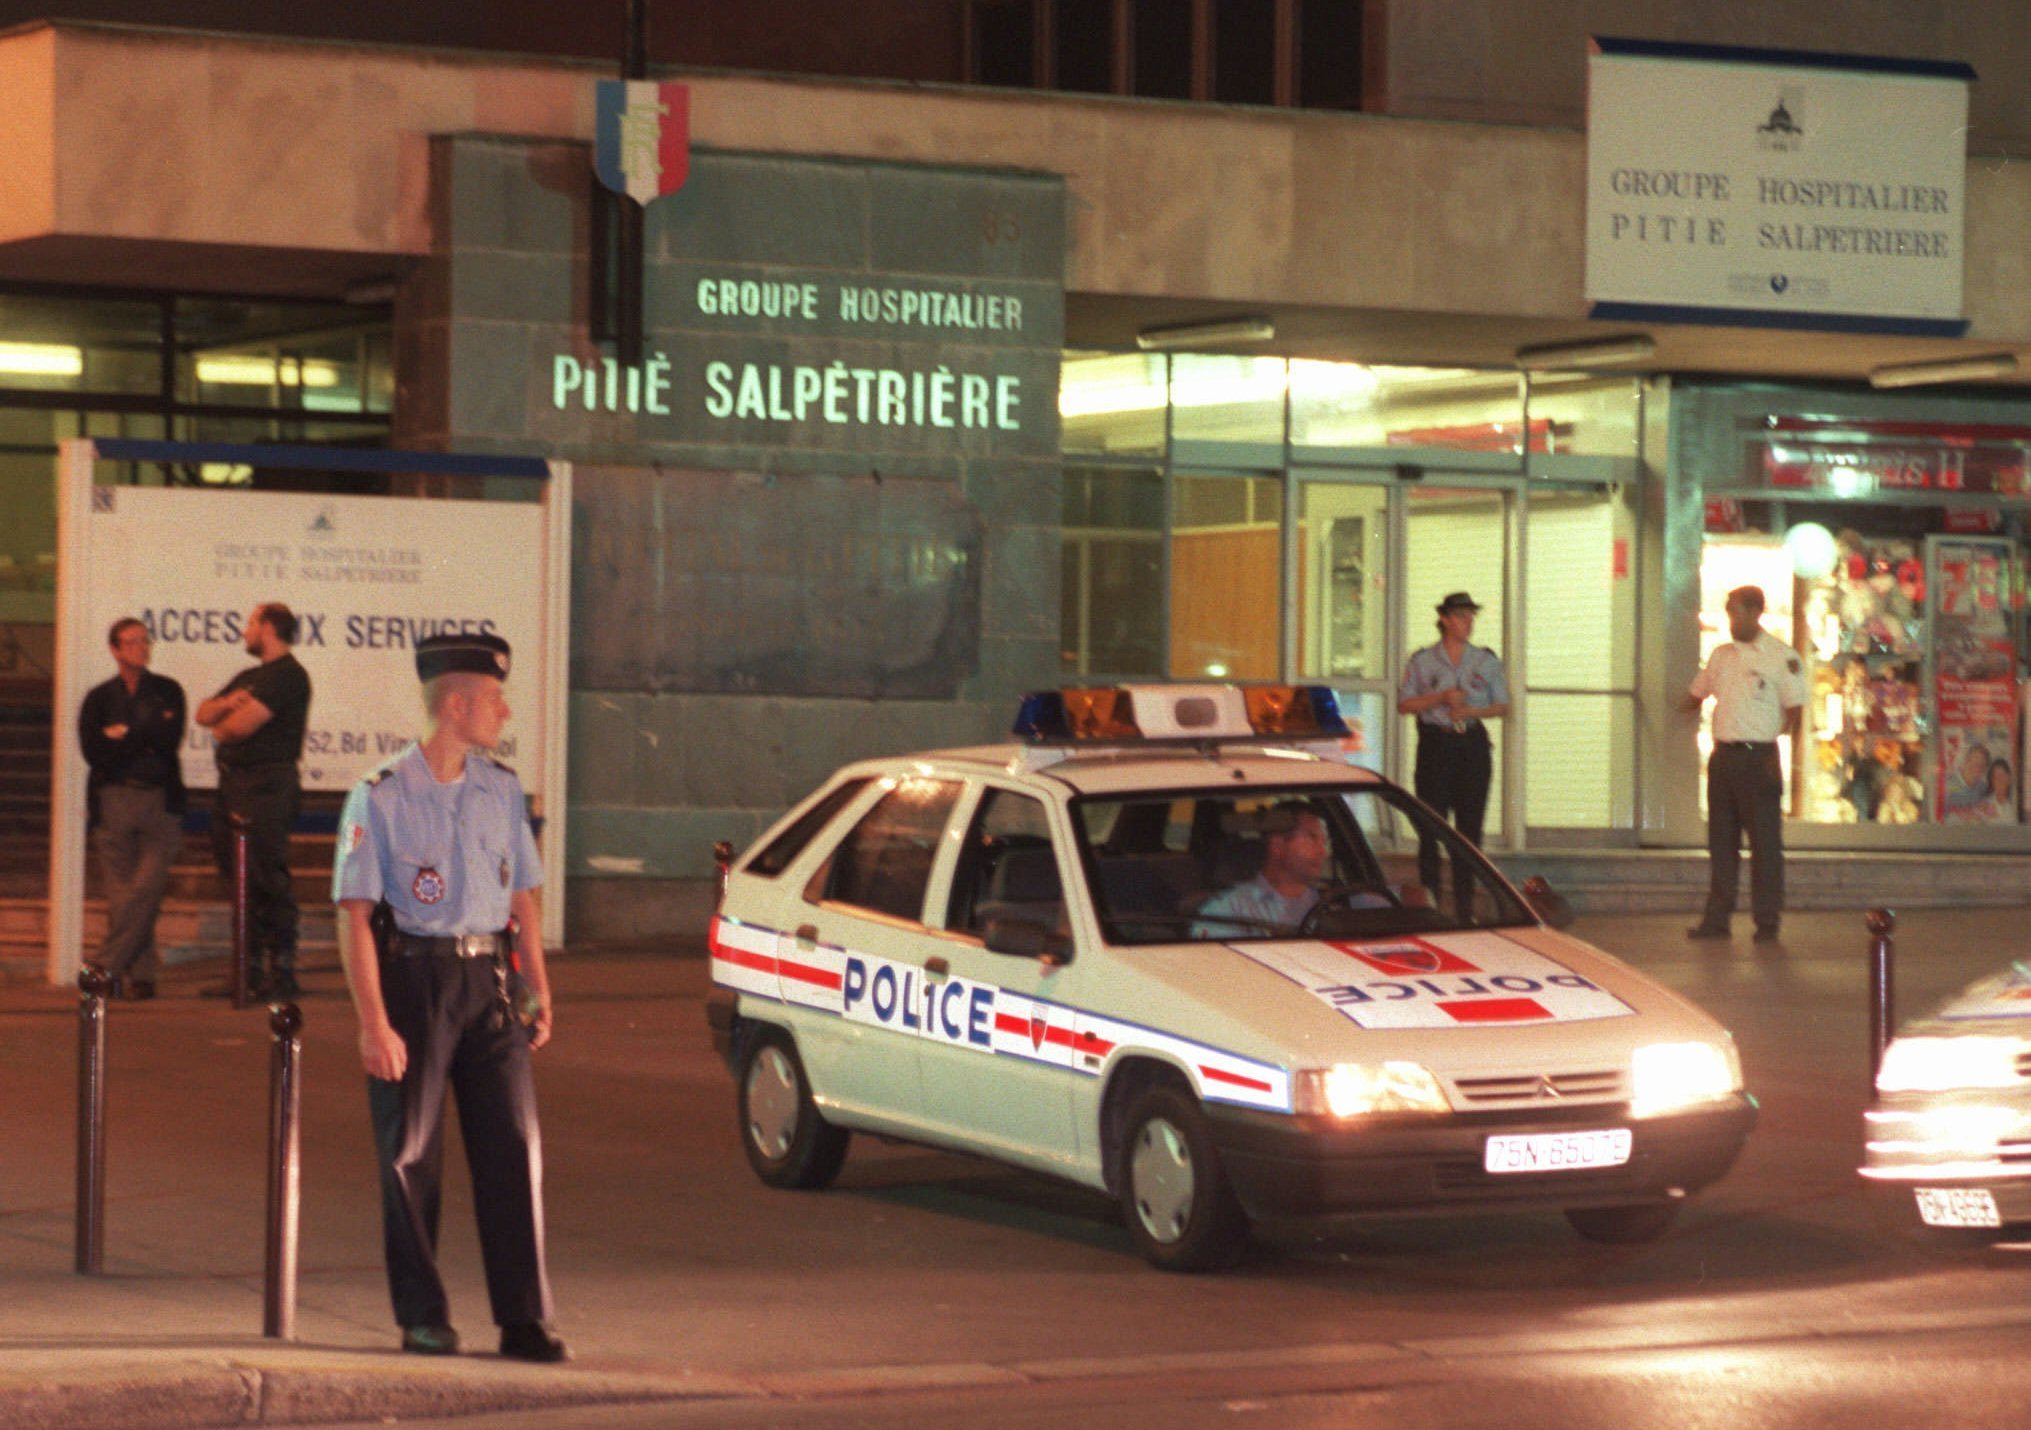 Police guard the entrance to the Pitie-Salpetriere hospital in Paris, France, where Diana, Princess of Wales, was taken following a car crash in which her companion Dodi Fayed and the chauffeur were killed early Sunday Aug.31, 1997.